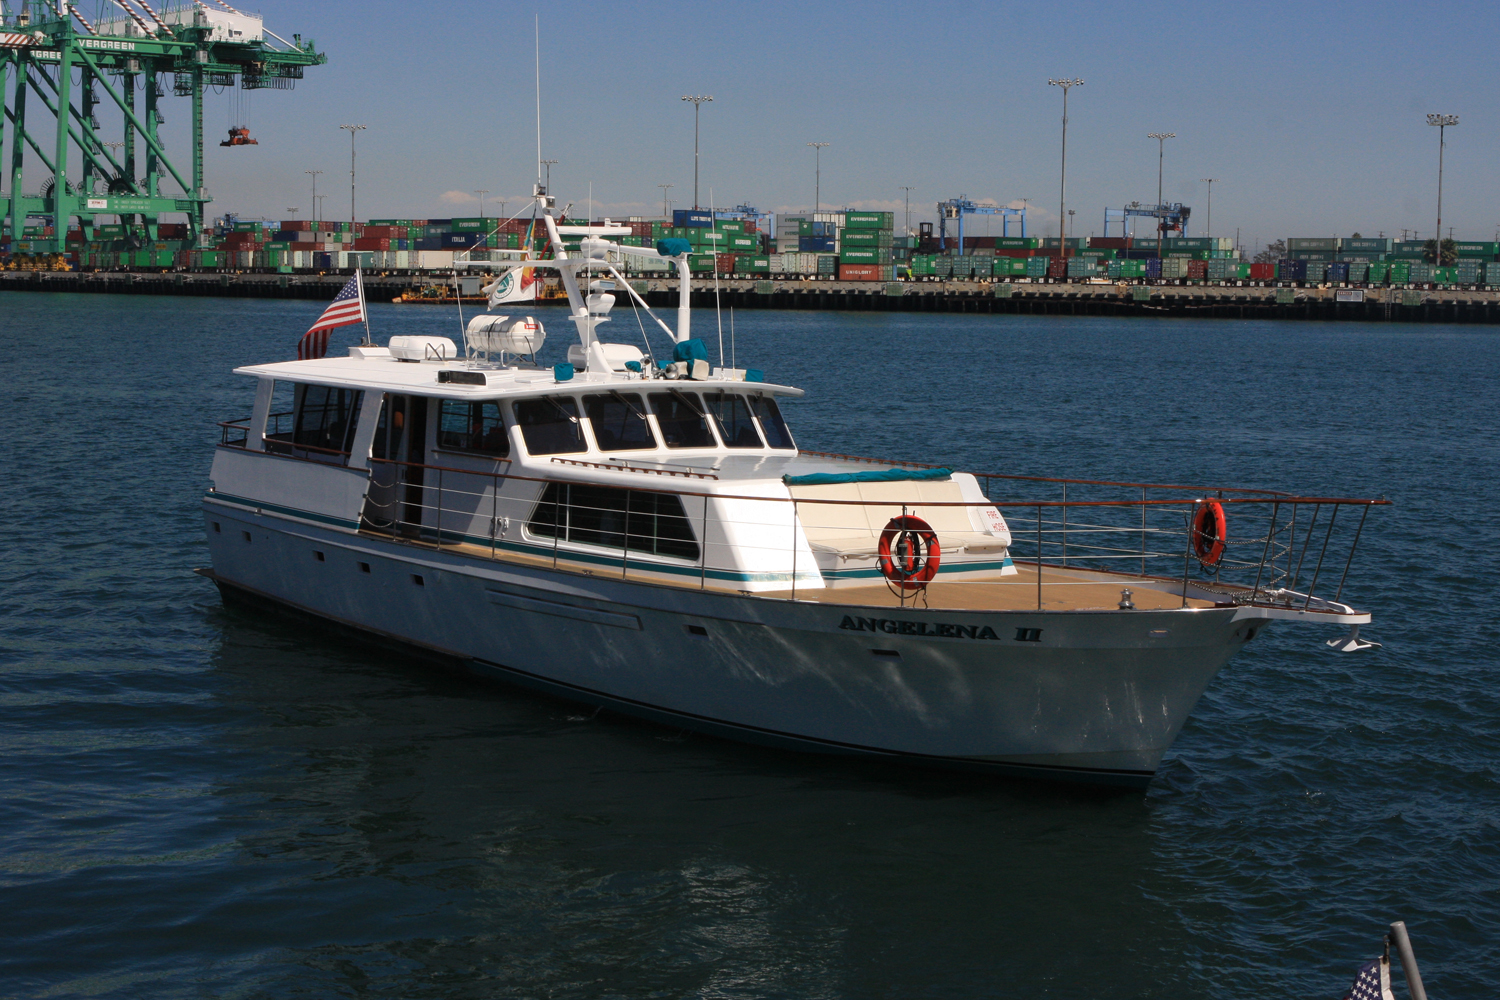 Port sinks 'Angelena' yacht tour program